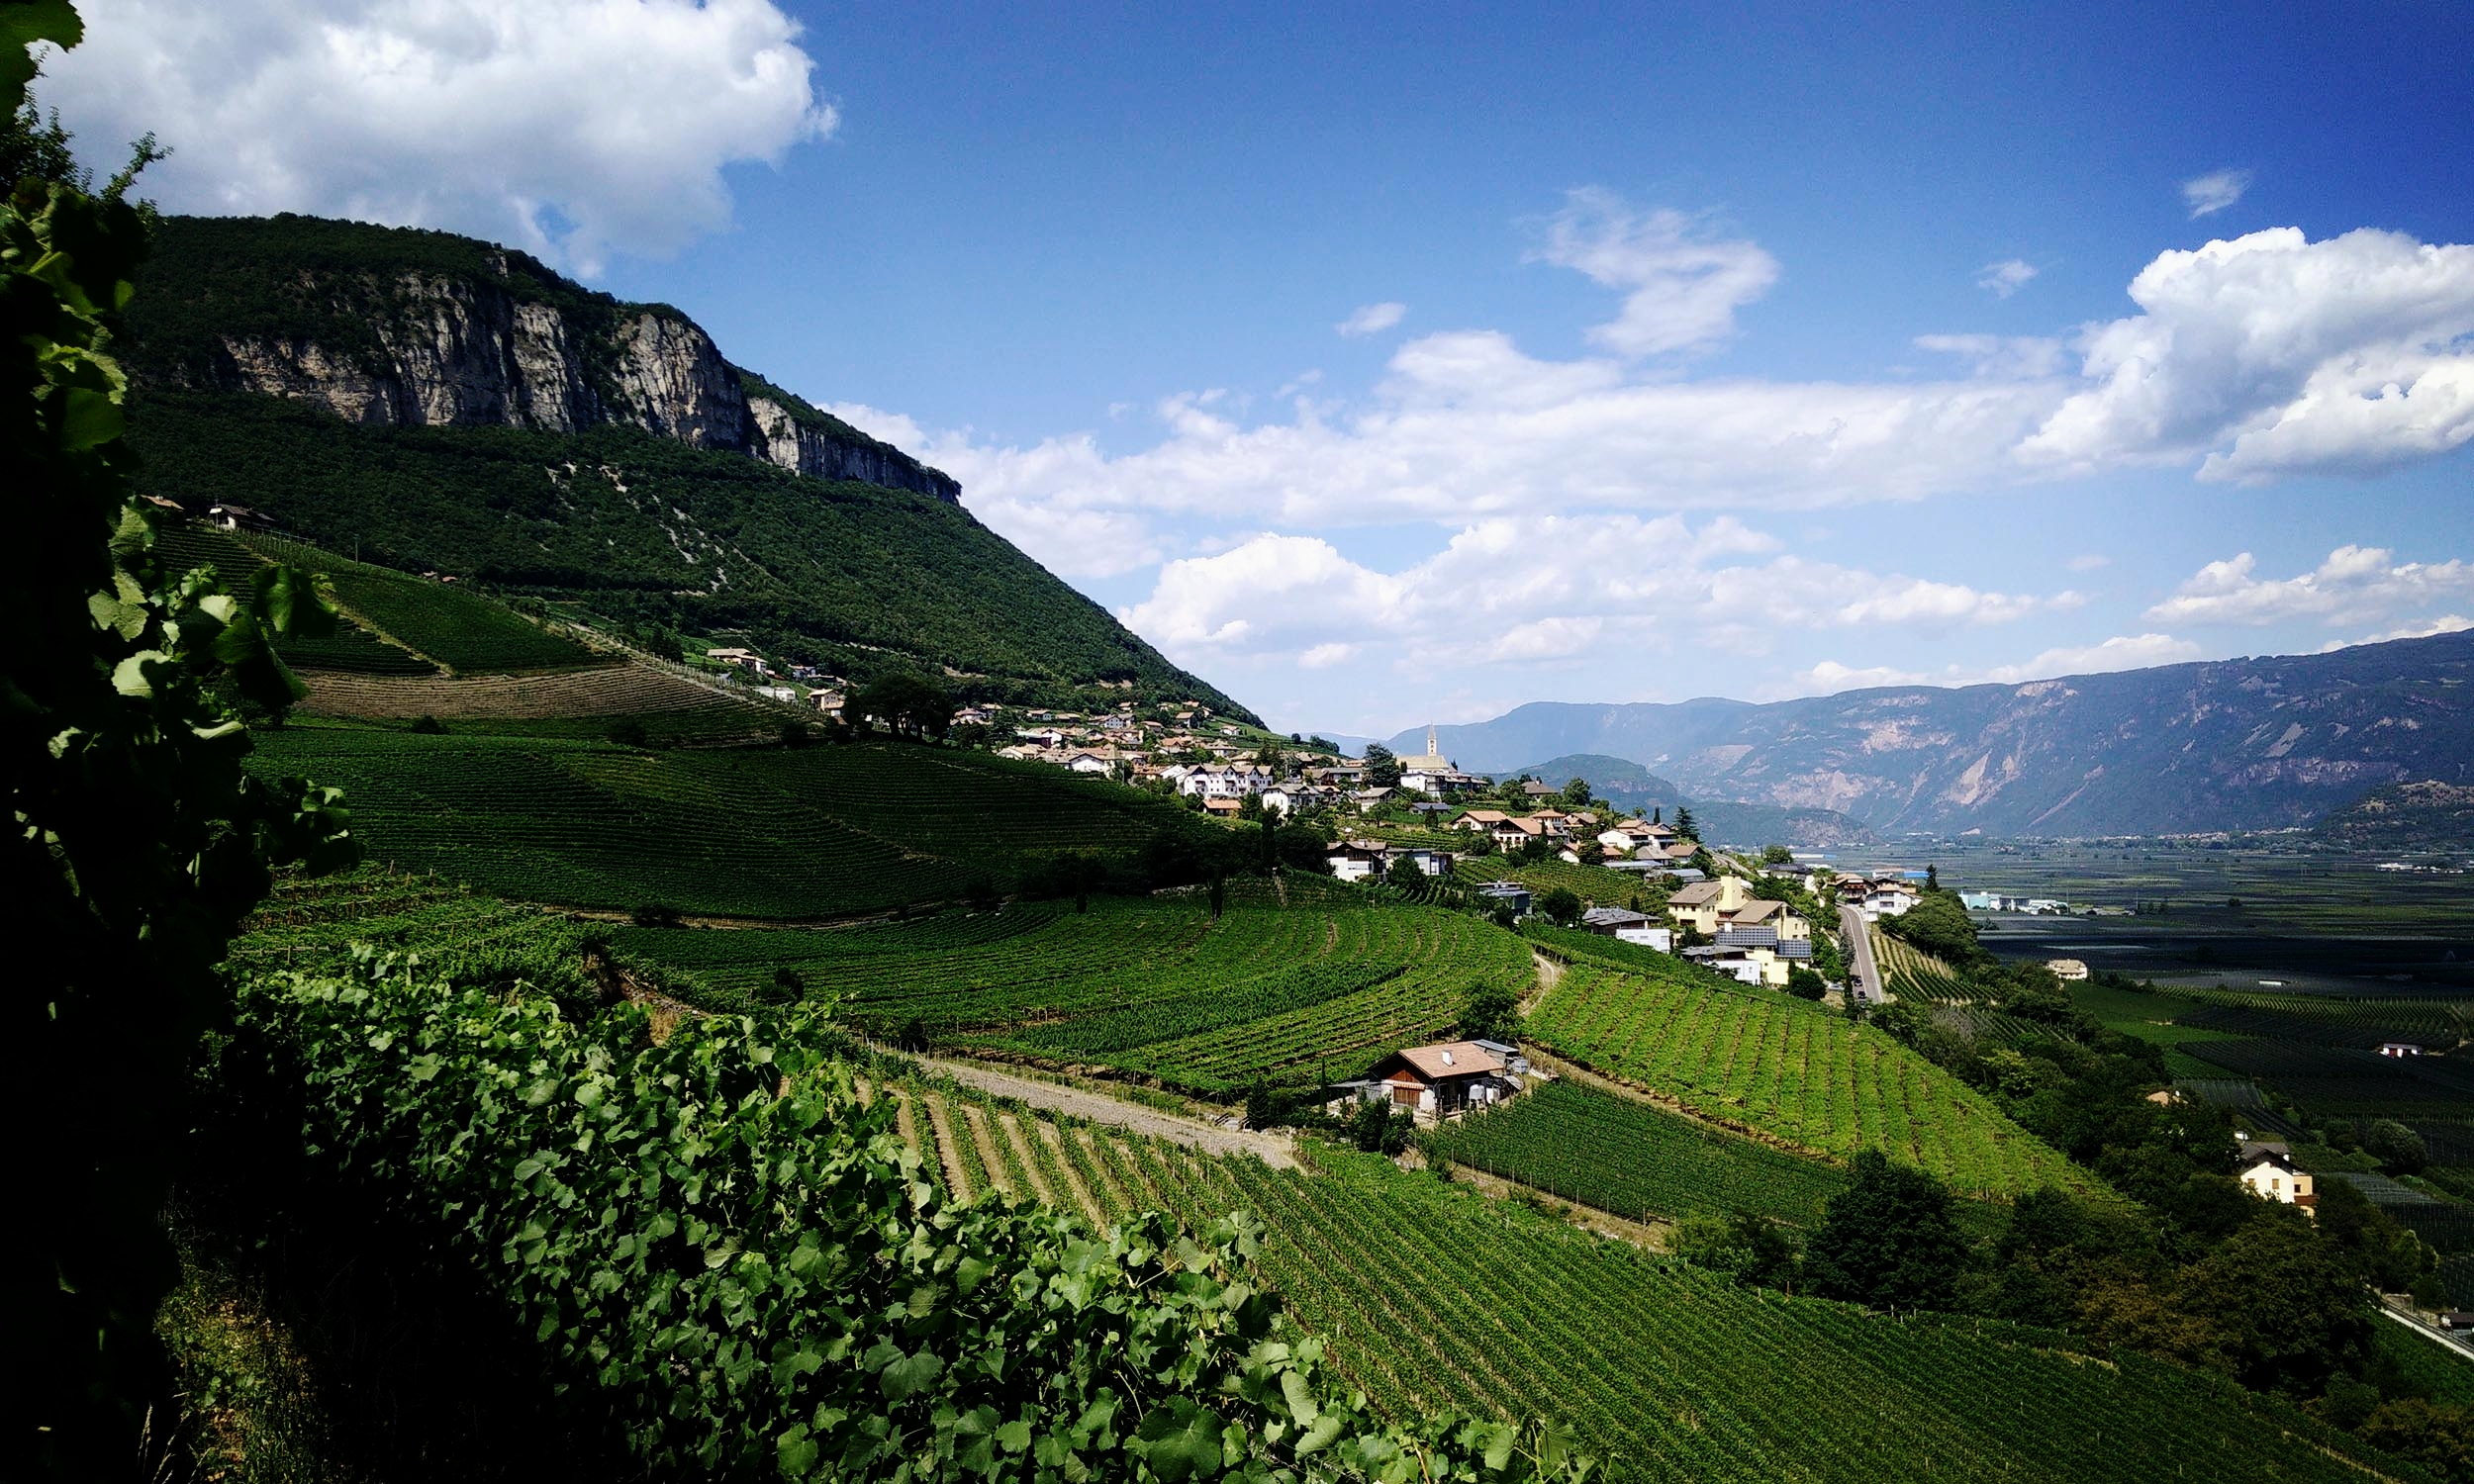 Vineyards in the Sudtirol